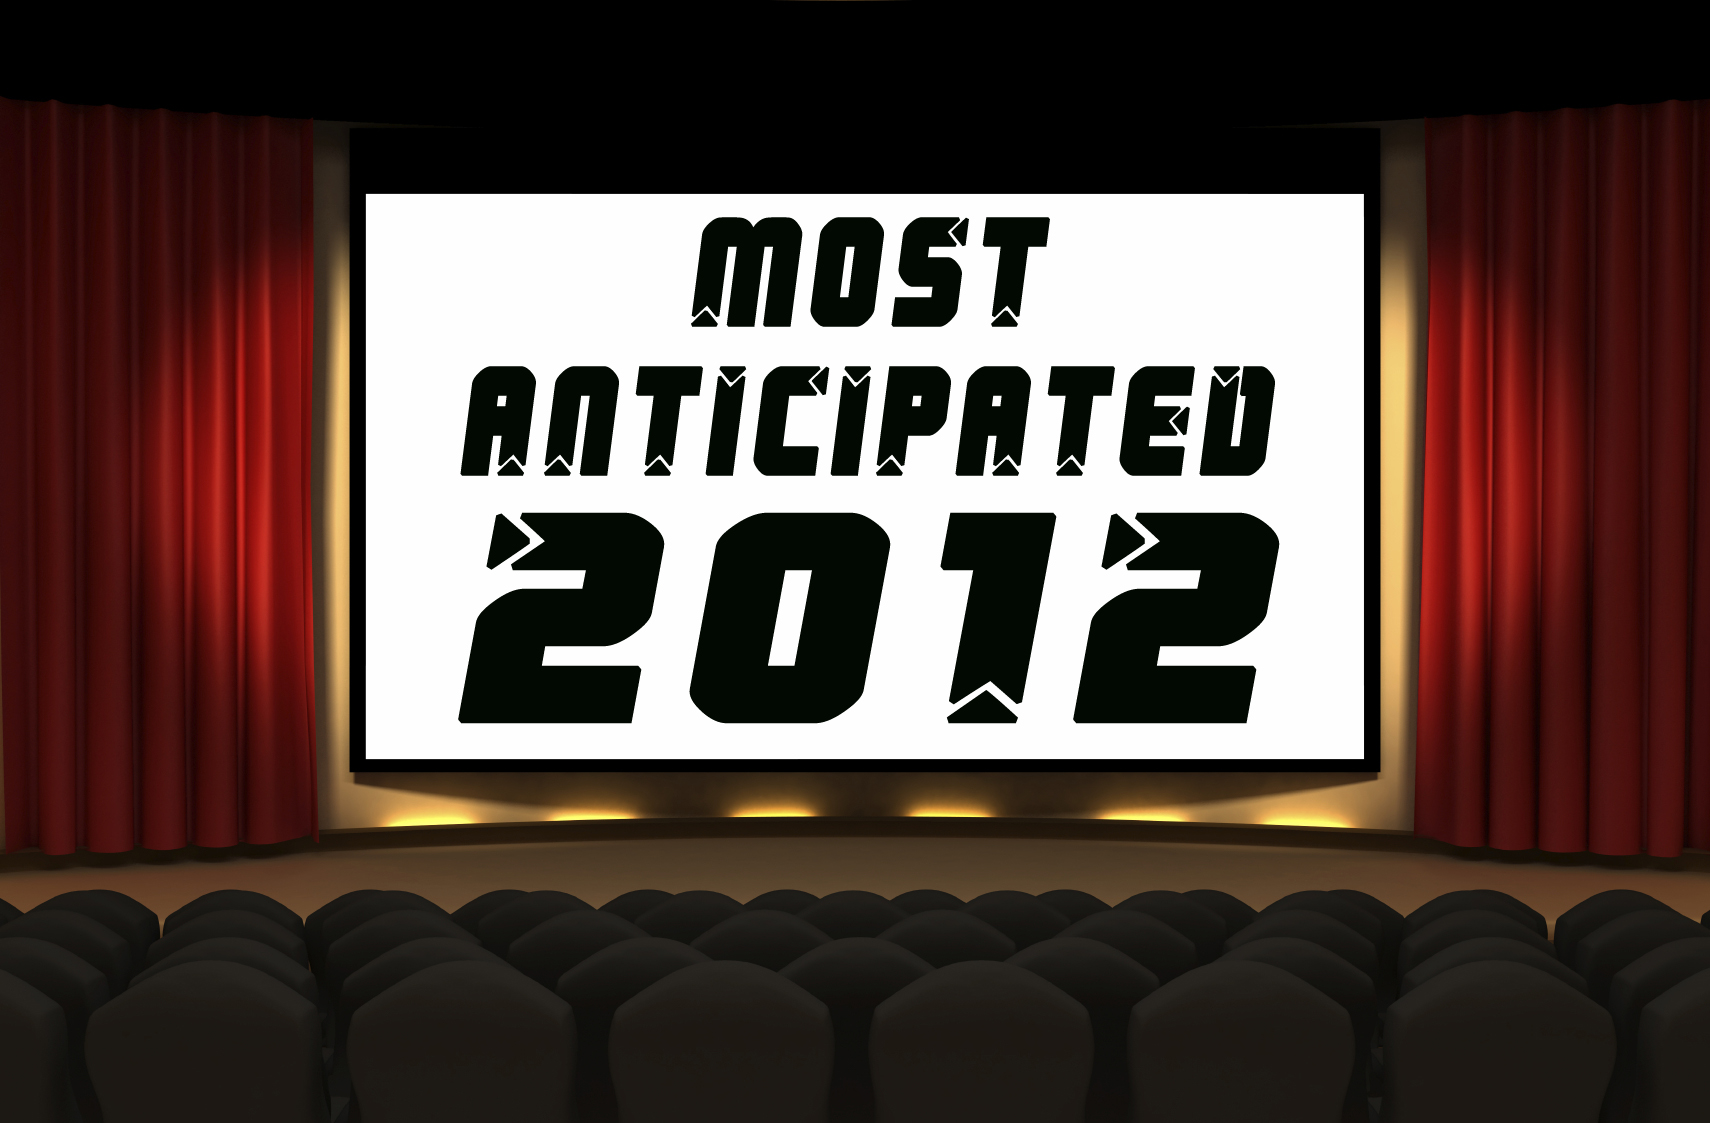 Thoughts On Film - Most Anticipated Still To Come in 2012 poll